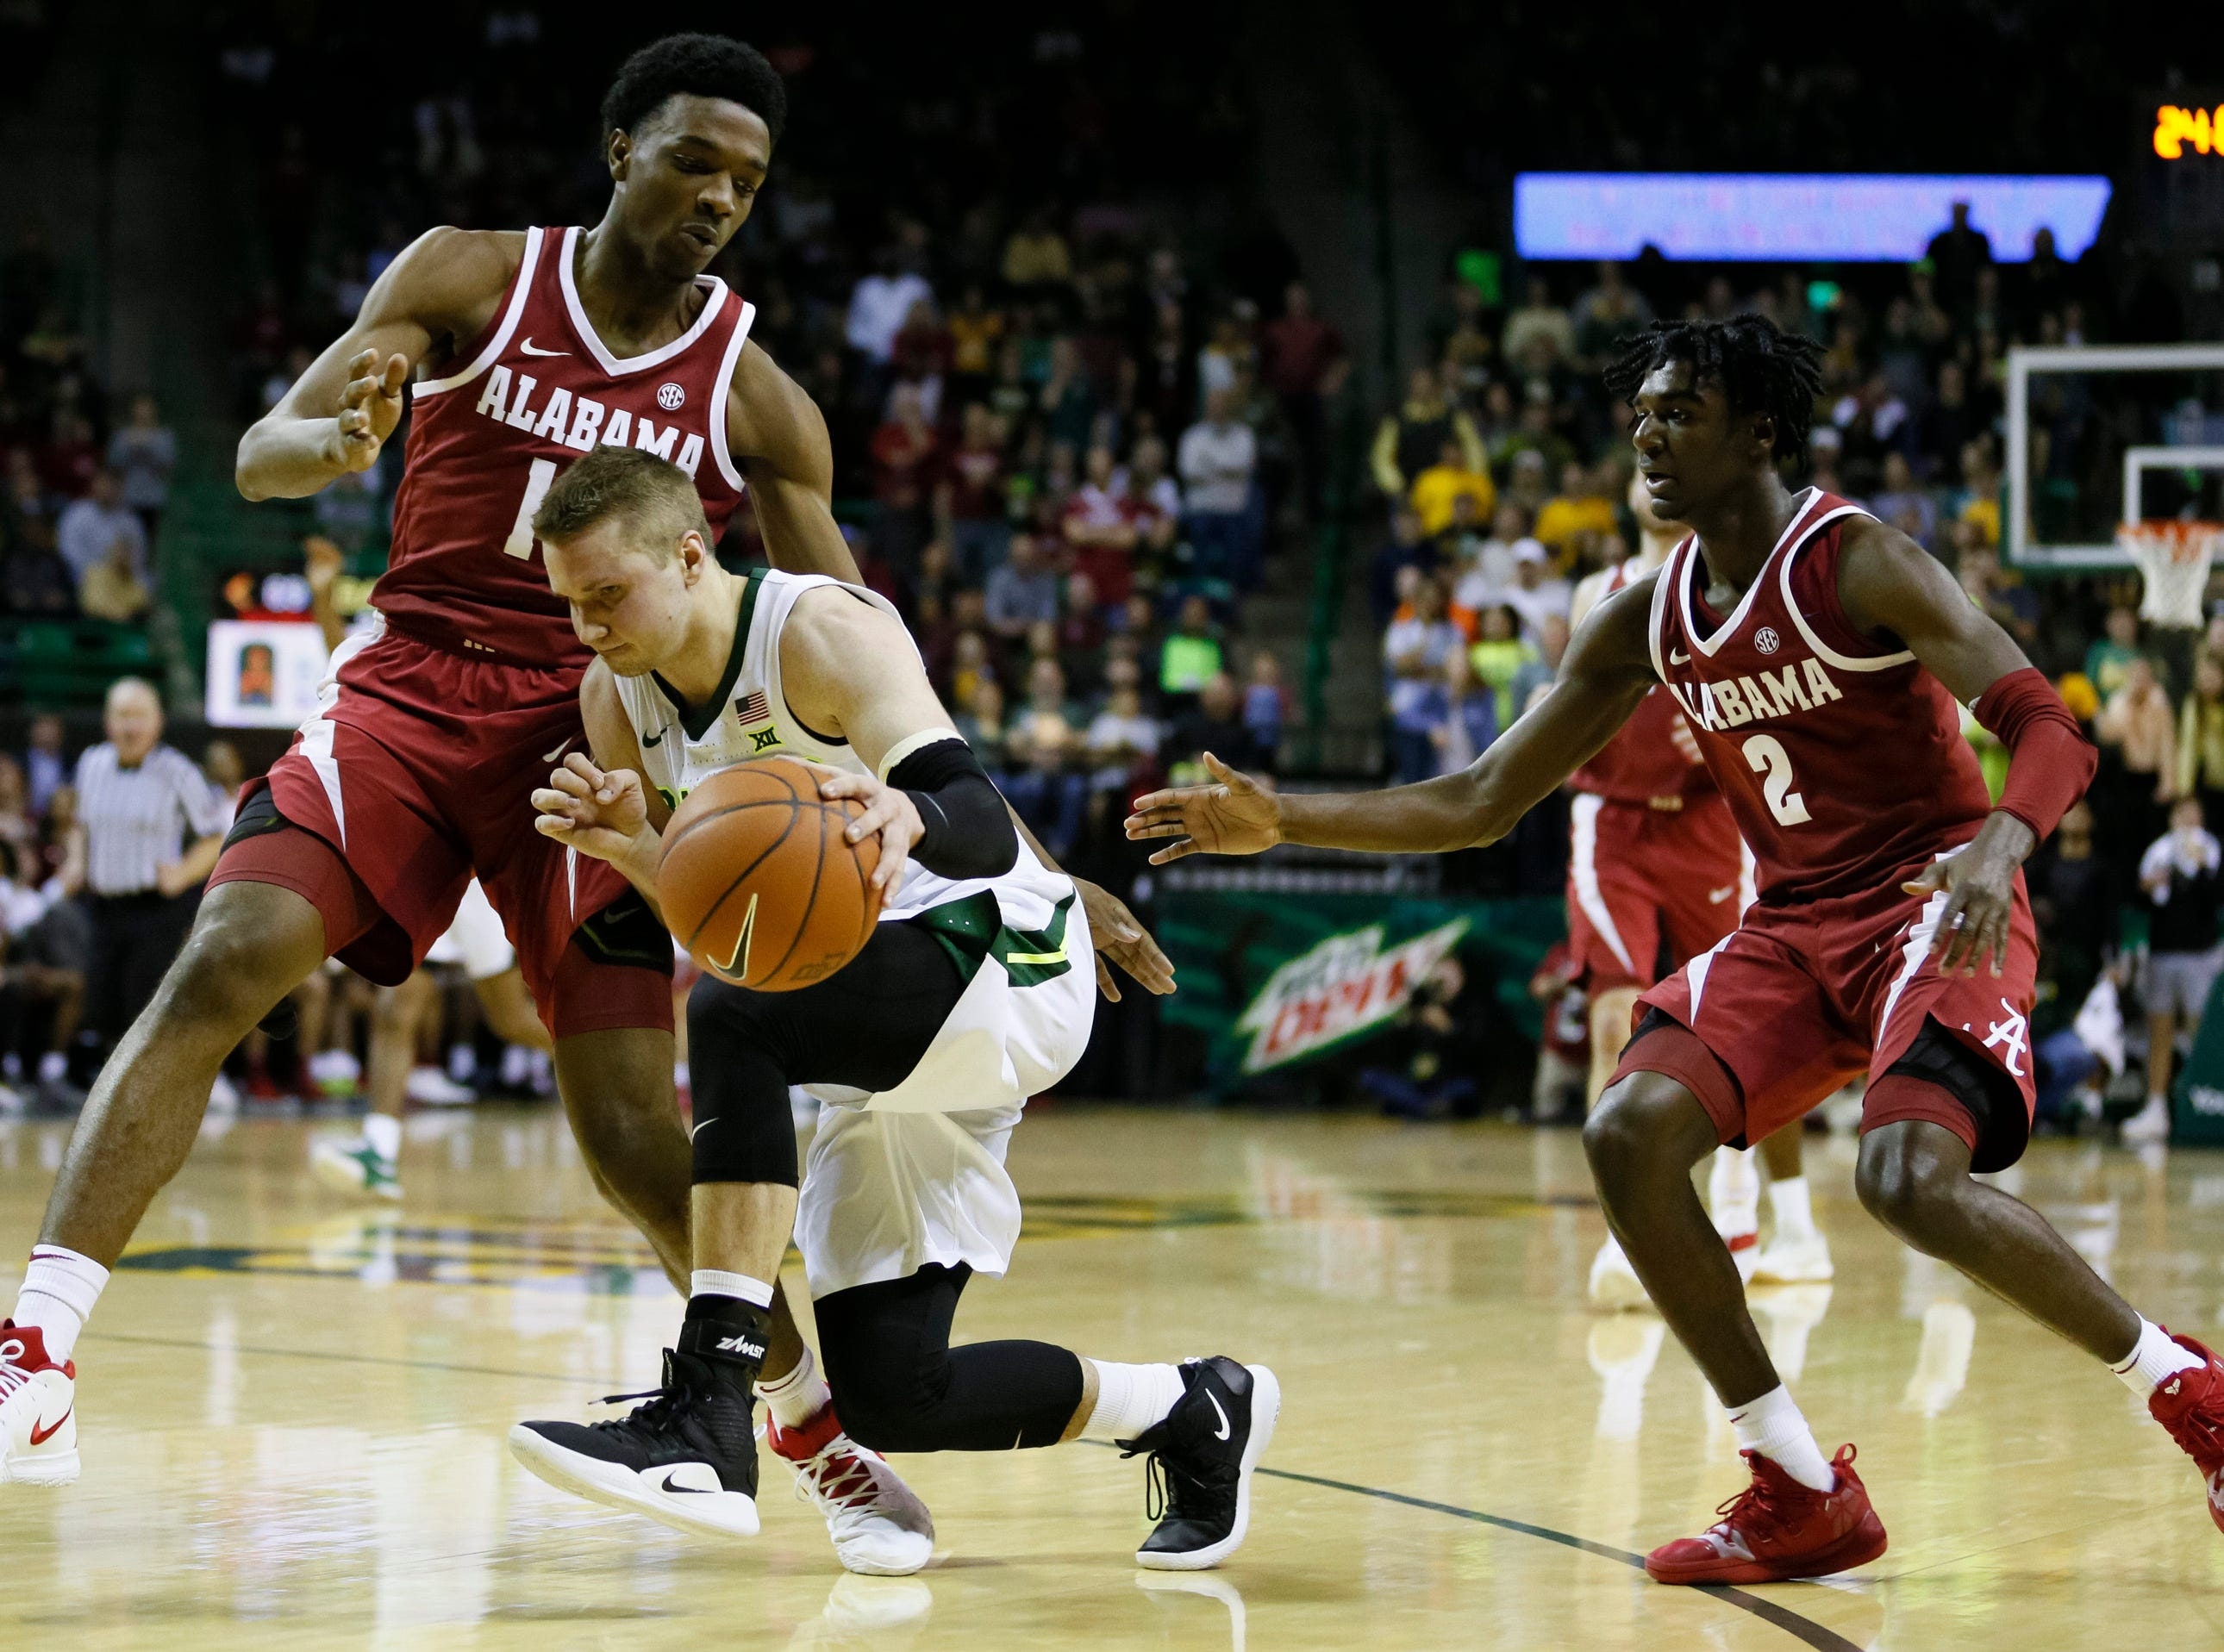 Jan 26, 2019; Waco, TX, USA; Baylor Bears guard Makai Mason (10) is fouled by Alabama Crimson Tide guard Herbert Jones (10) during the second half at Ferrell Center. Mandatory Credit: Ray Carlin-USA TODAY Sports